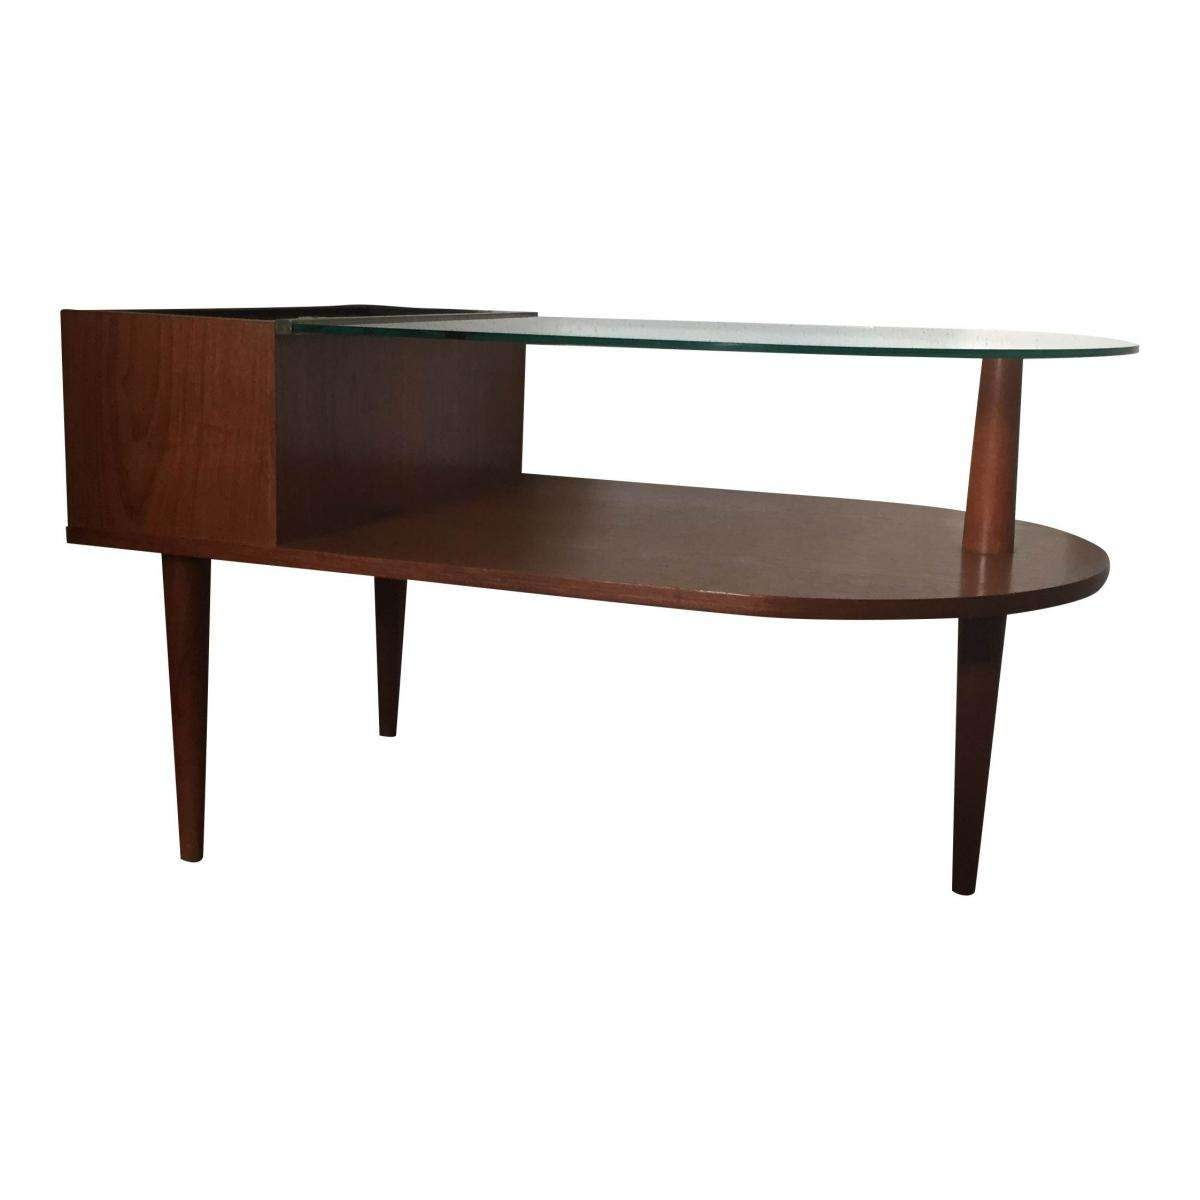 Widely Used Retro Teak Glass Coffee Tables With Regard To Danish Teak Side Table With Glass And Flower Crib From Cfc (View 10 of 20)